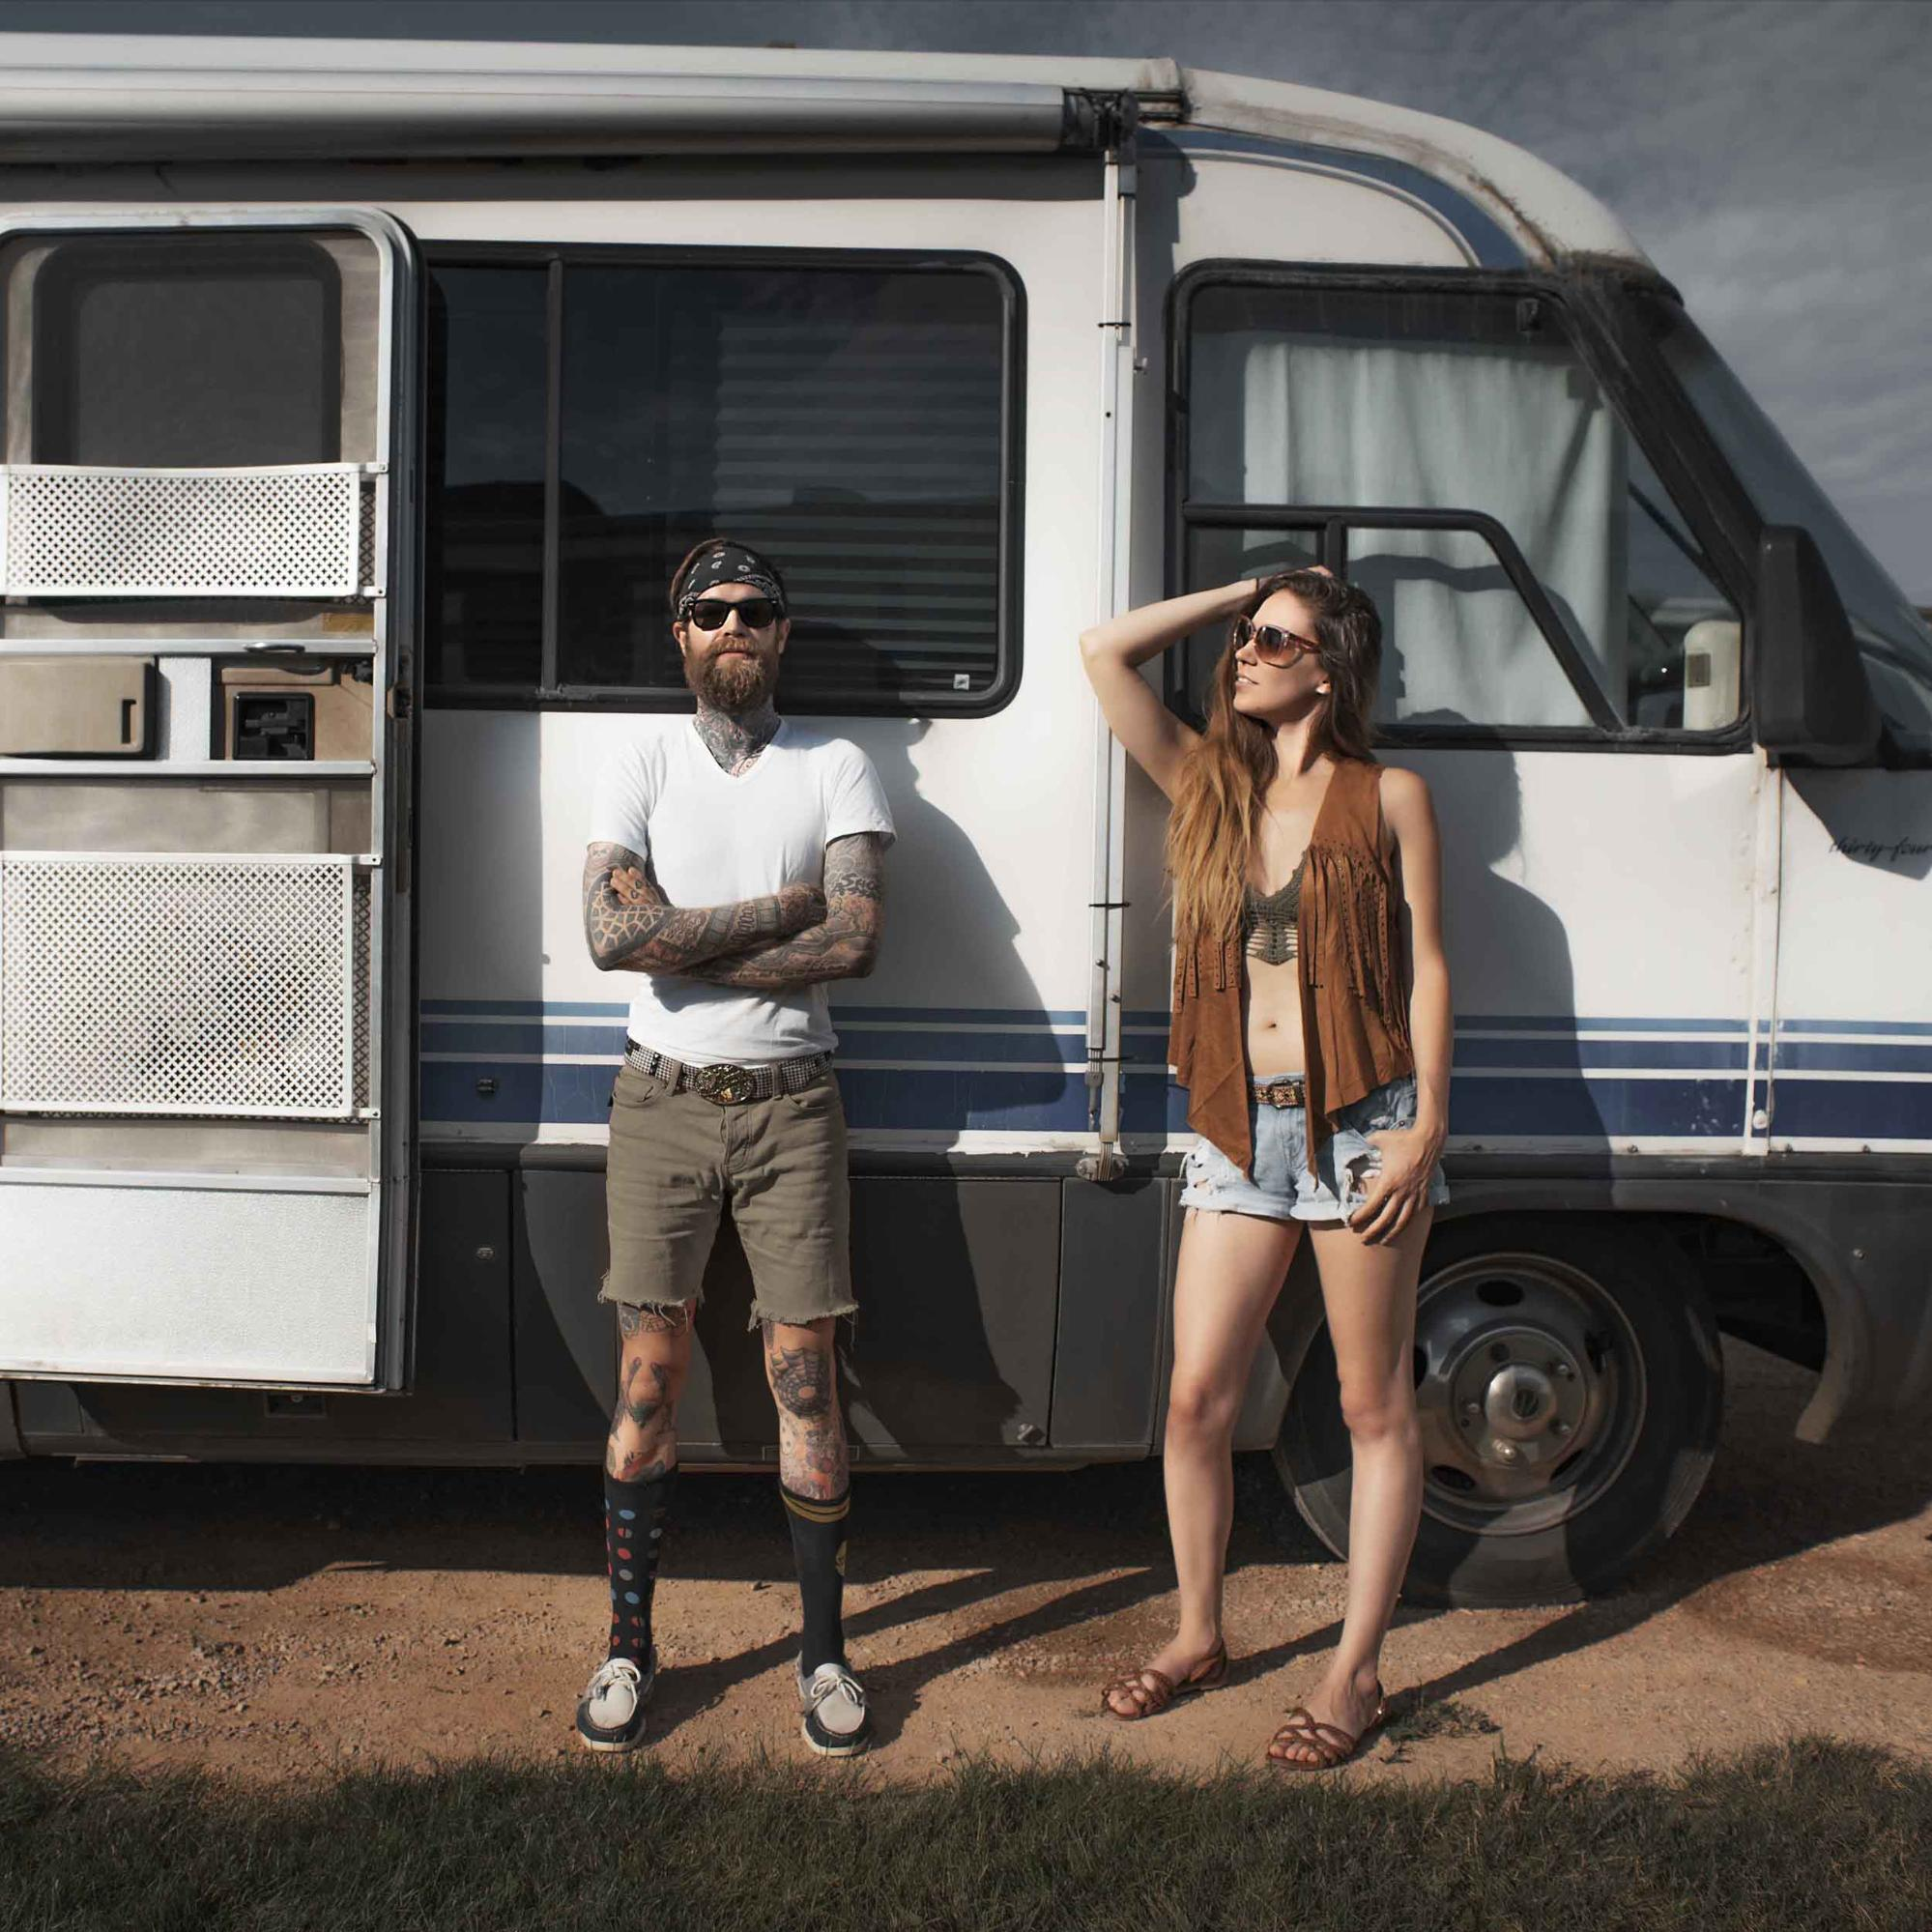 Reggie and Monica standing proud of their Airstream home